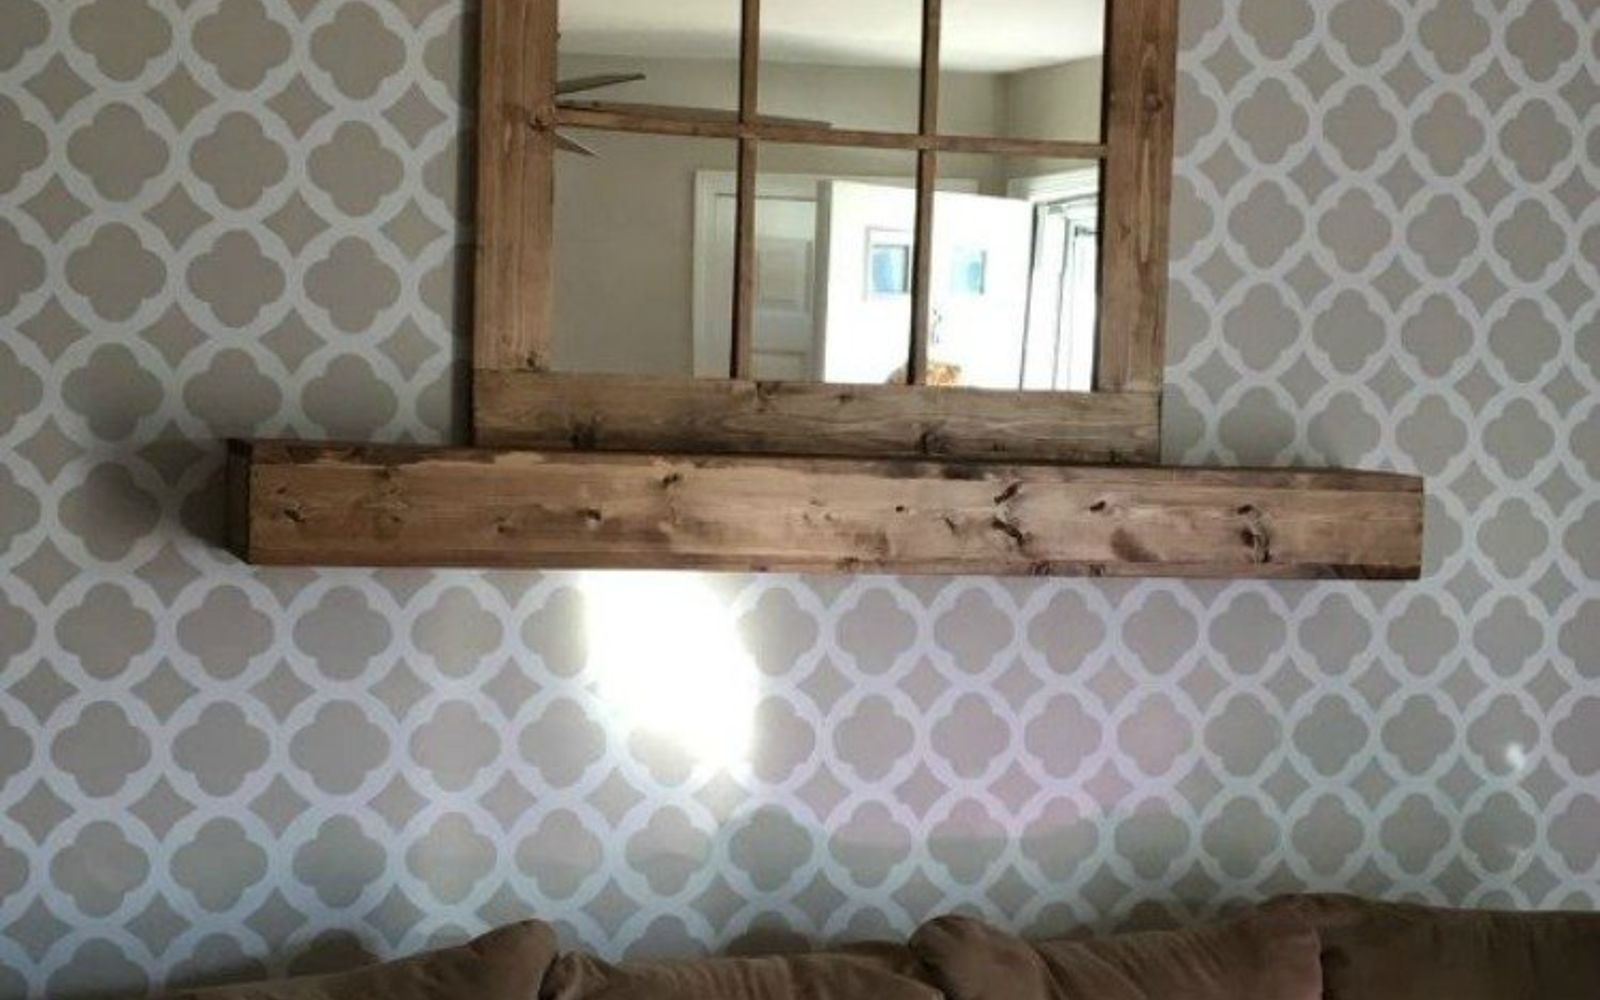 s 13 low budget ways to decorate your living room walls, go green, plumbing, Build a mantel and floating shelf